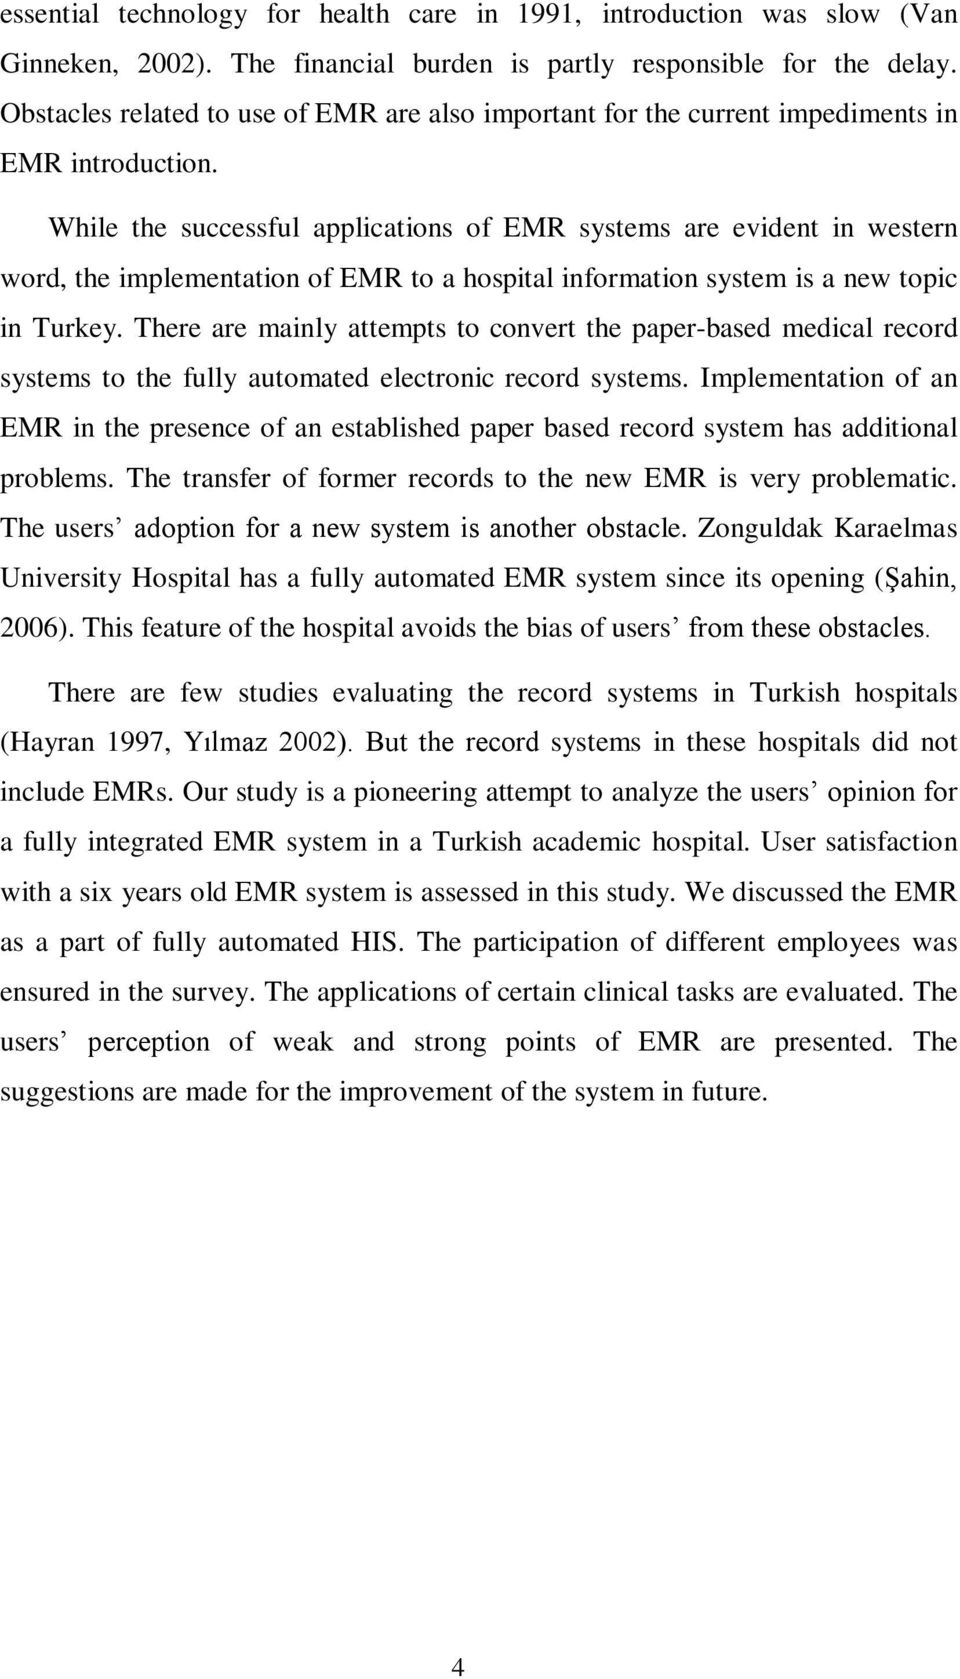 While the successful applications of EMR systems are evident in western word, the implementation of EMR to a hospital information system is a new topic in Turkey.